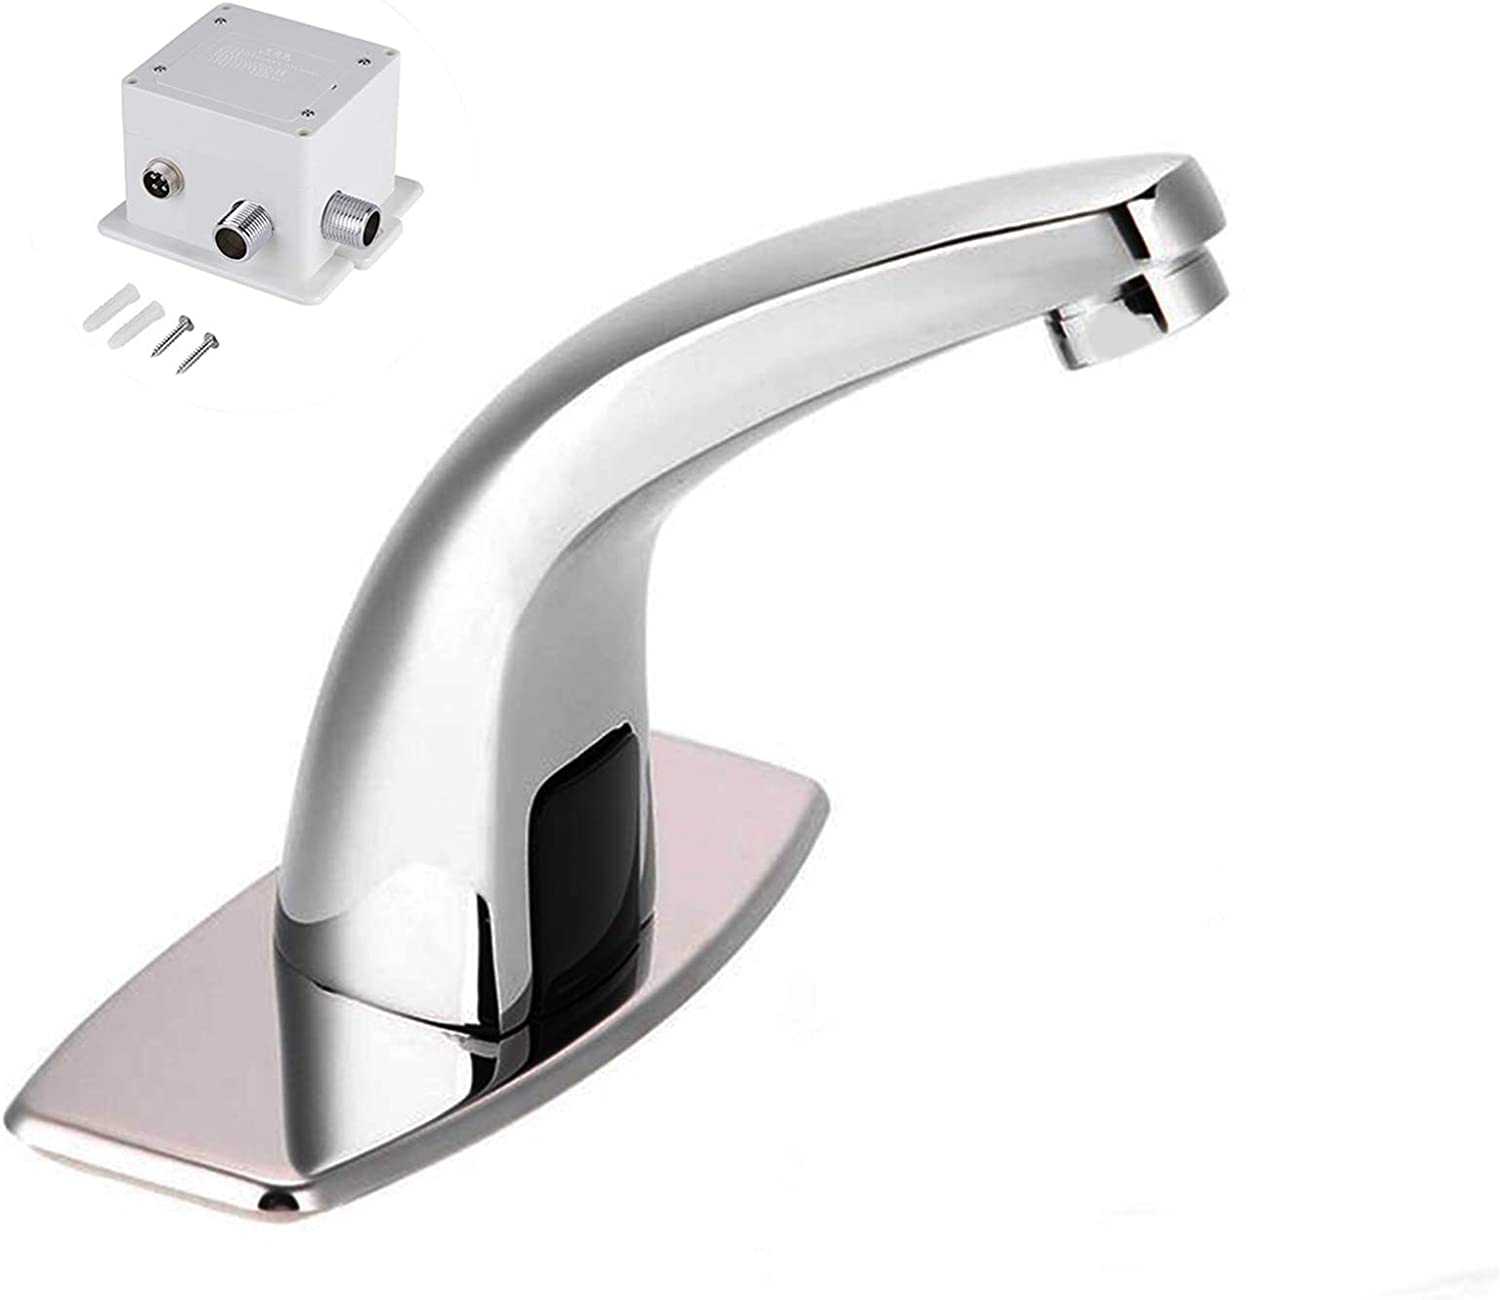 Non-Contact Automatic Touchless Sensor Faucet Bathroom Sink Water Tap for Home Hotel Use G1//2in Water Faucet Sensor